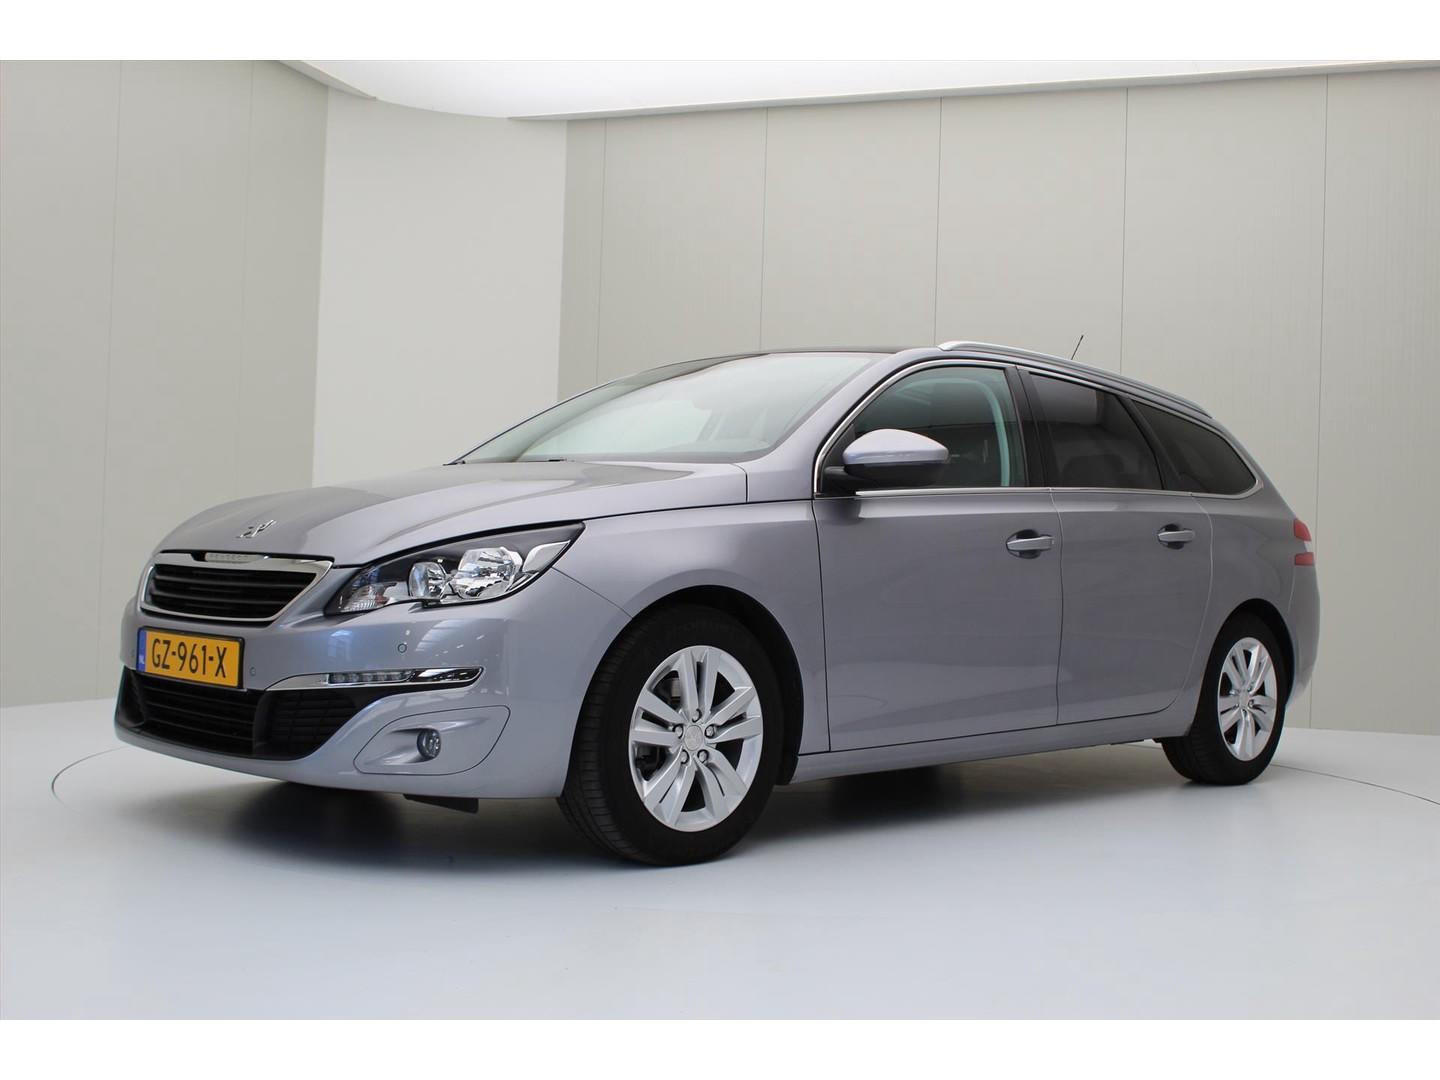 Peugeot 308 Sw 1.6 bluehdi 120pk blue lease [ panodak+camera+pdc+cruise ]